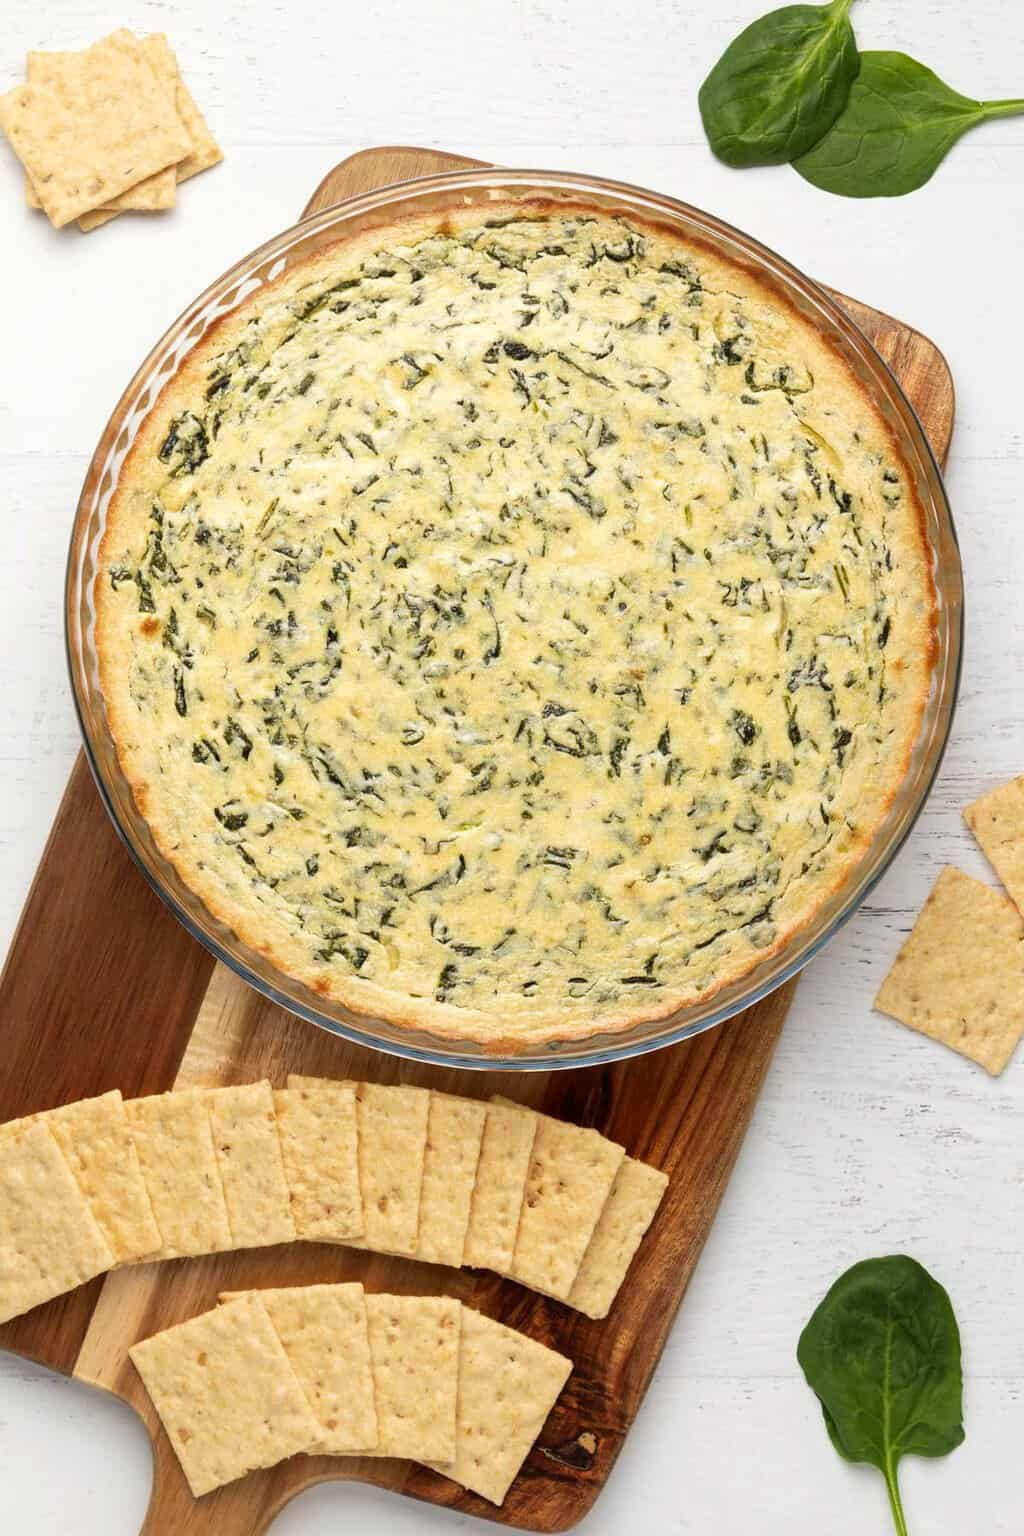 Freshly baked vegan spinach dip in a round glass dish.